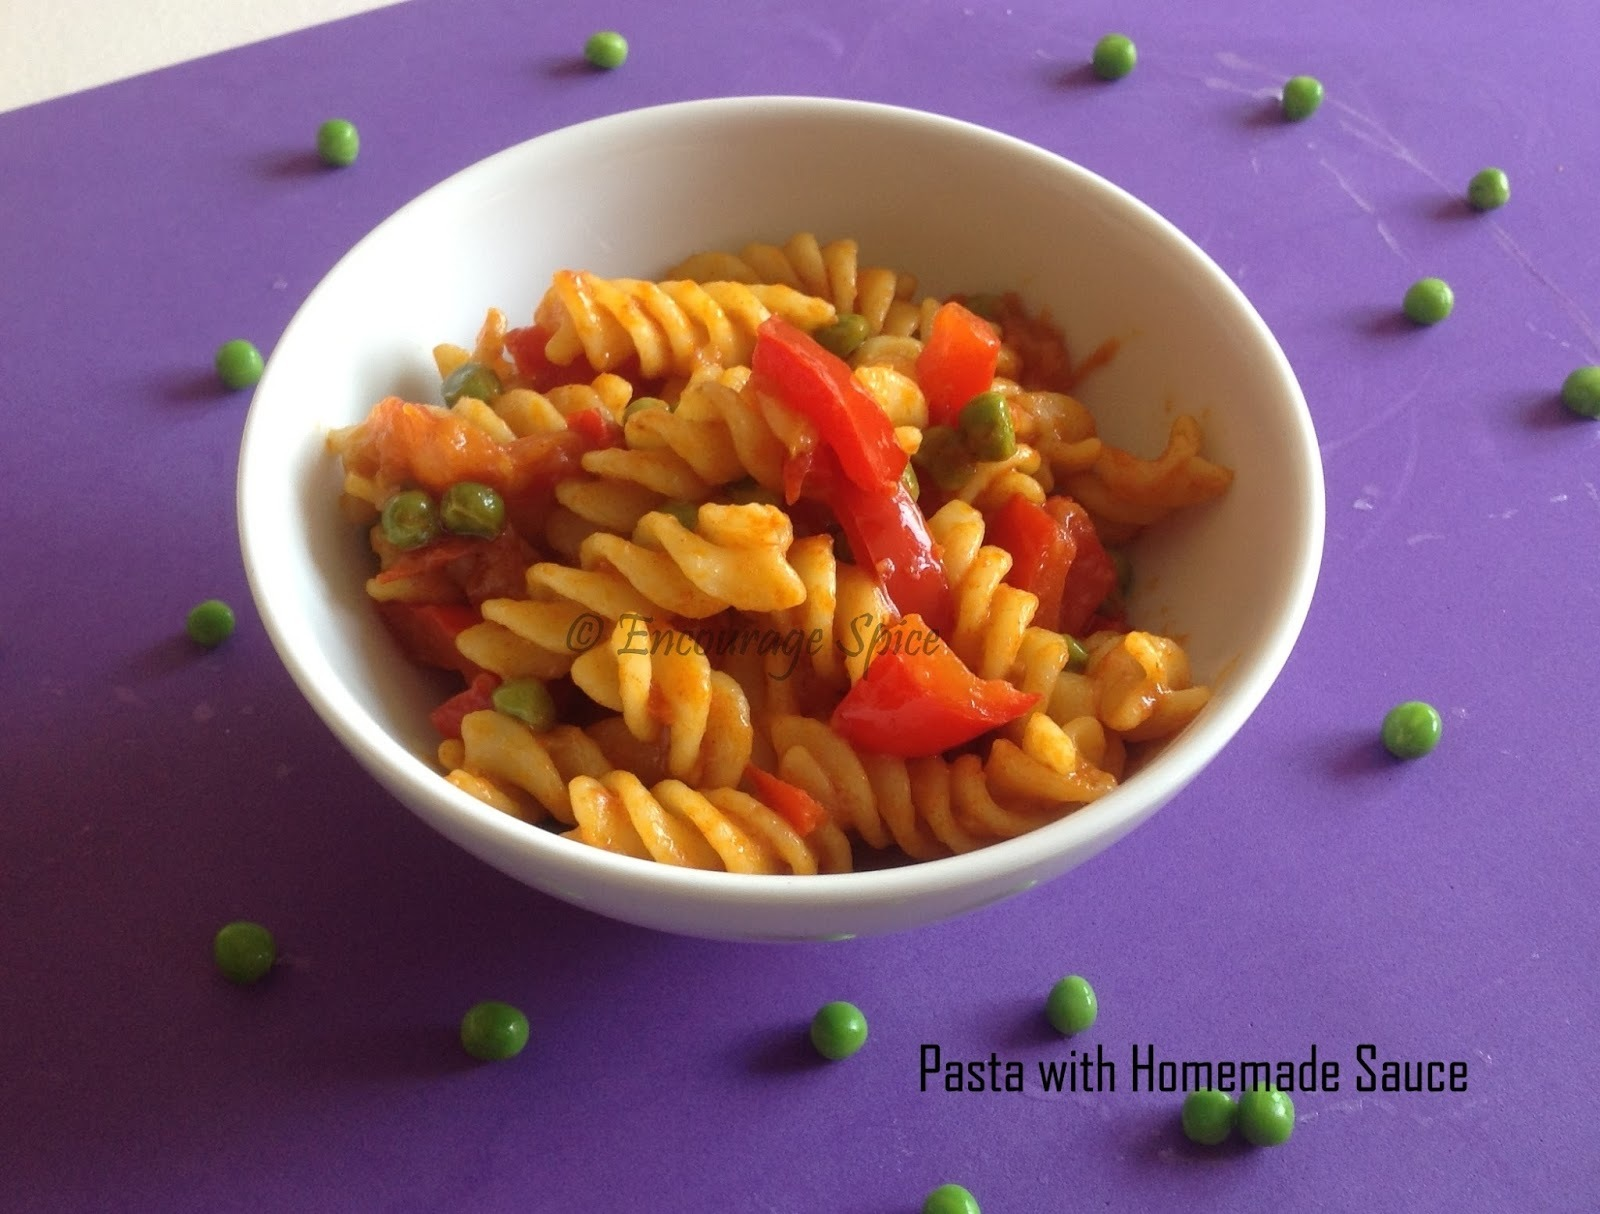 Pasta with Homemade sauce